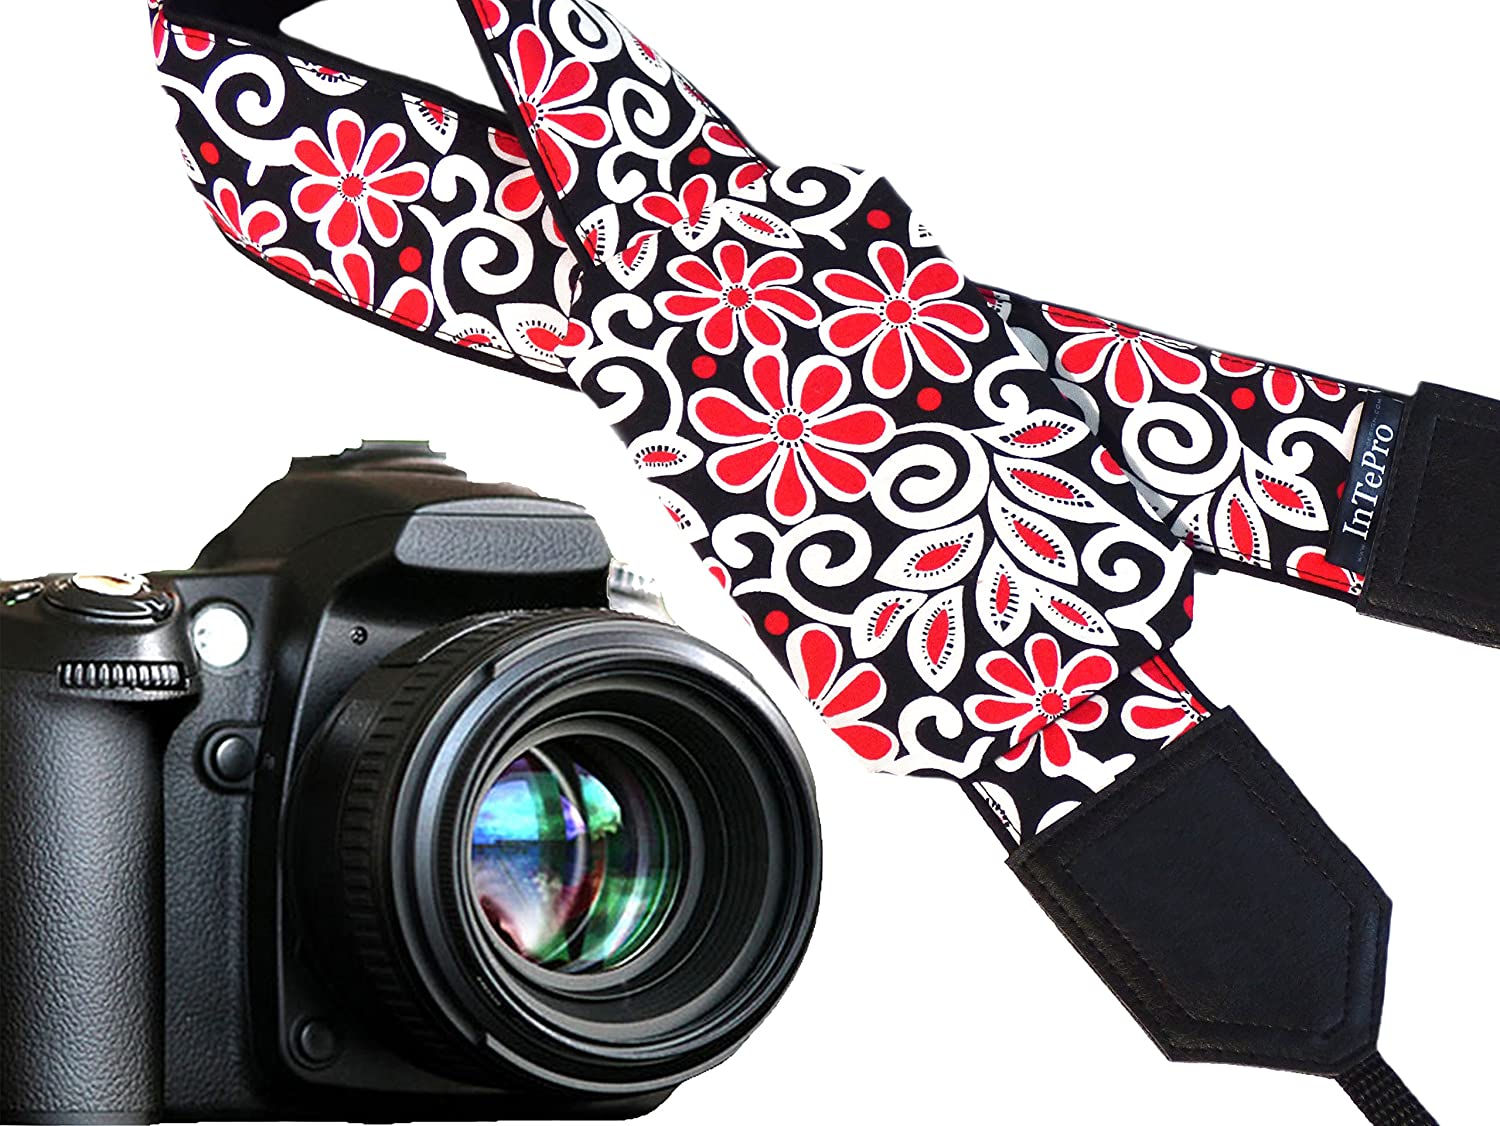 White Code 00331 Black Bridesmaid Gift Ideas Gifts for Every Budget by InTePro Red Pocket Camera Strap with Abstract Flowers